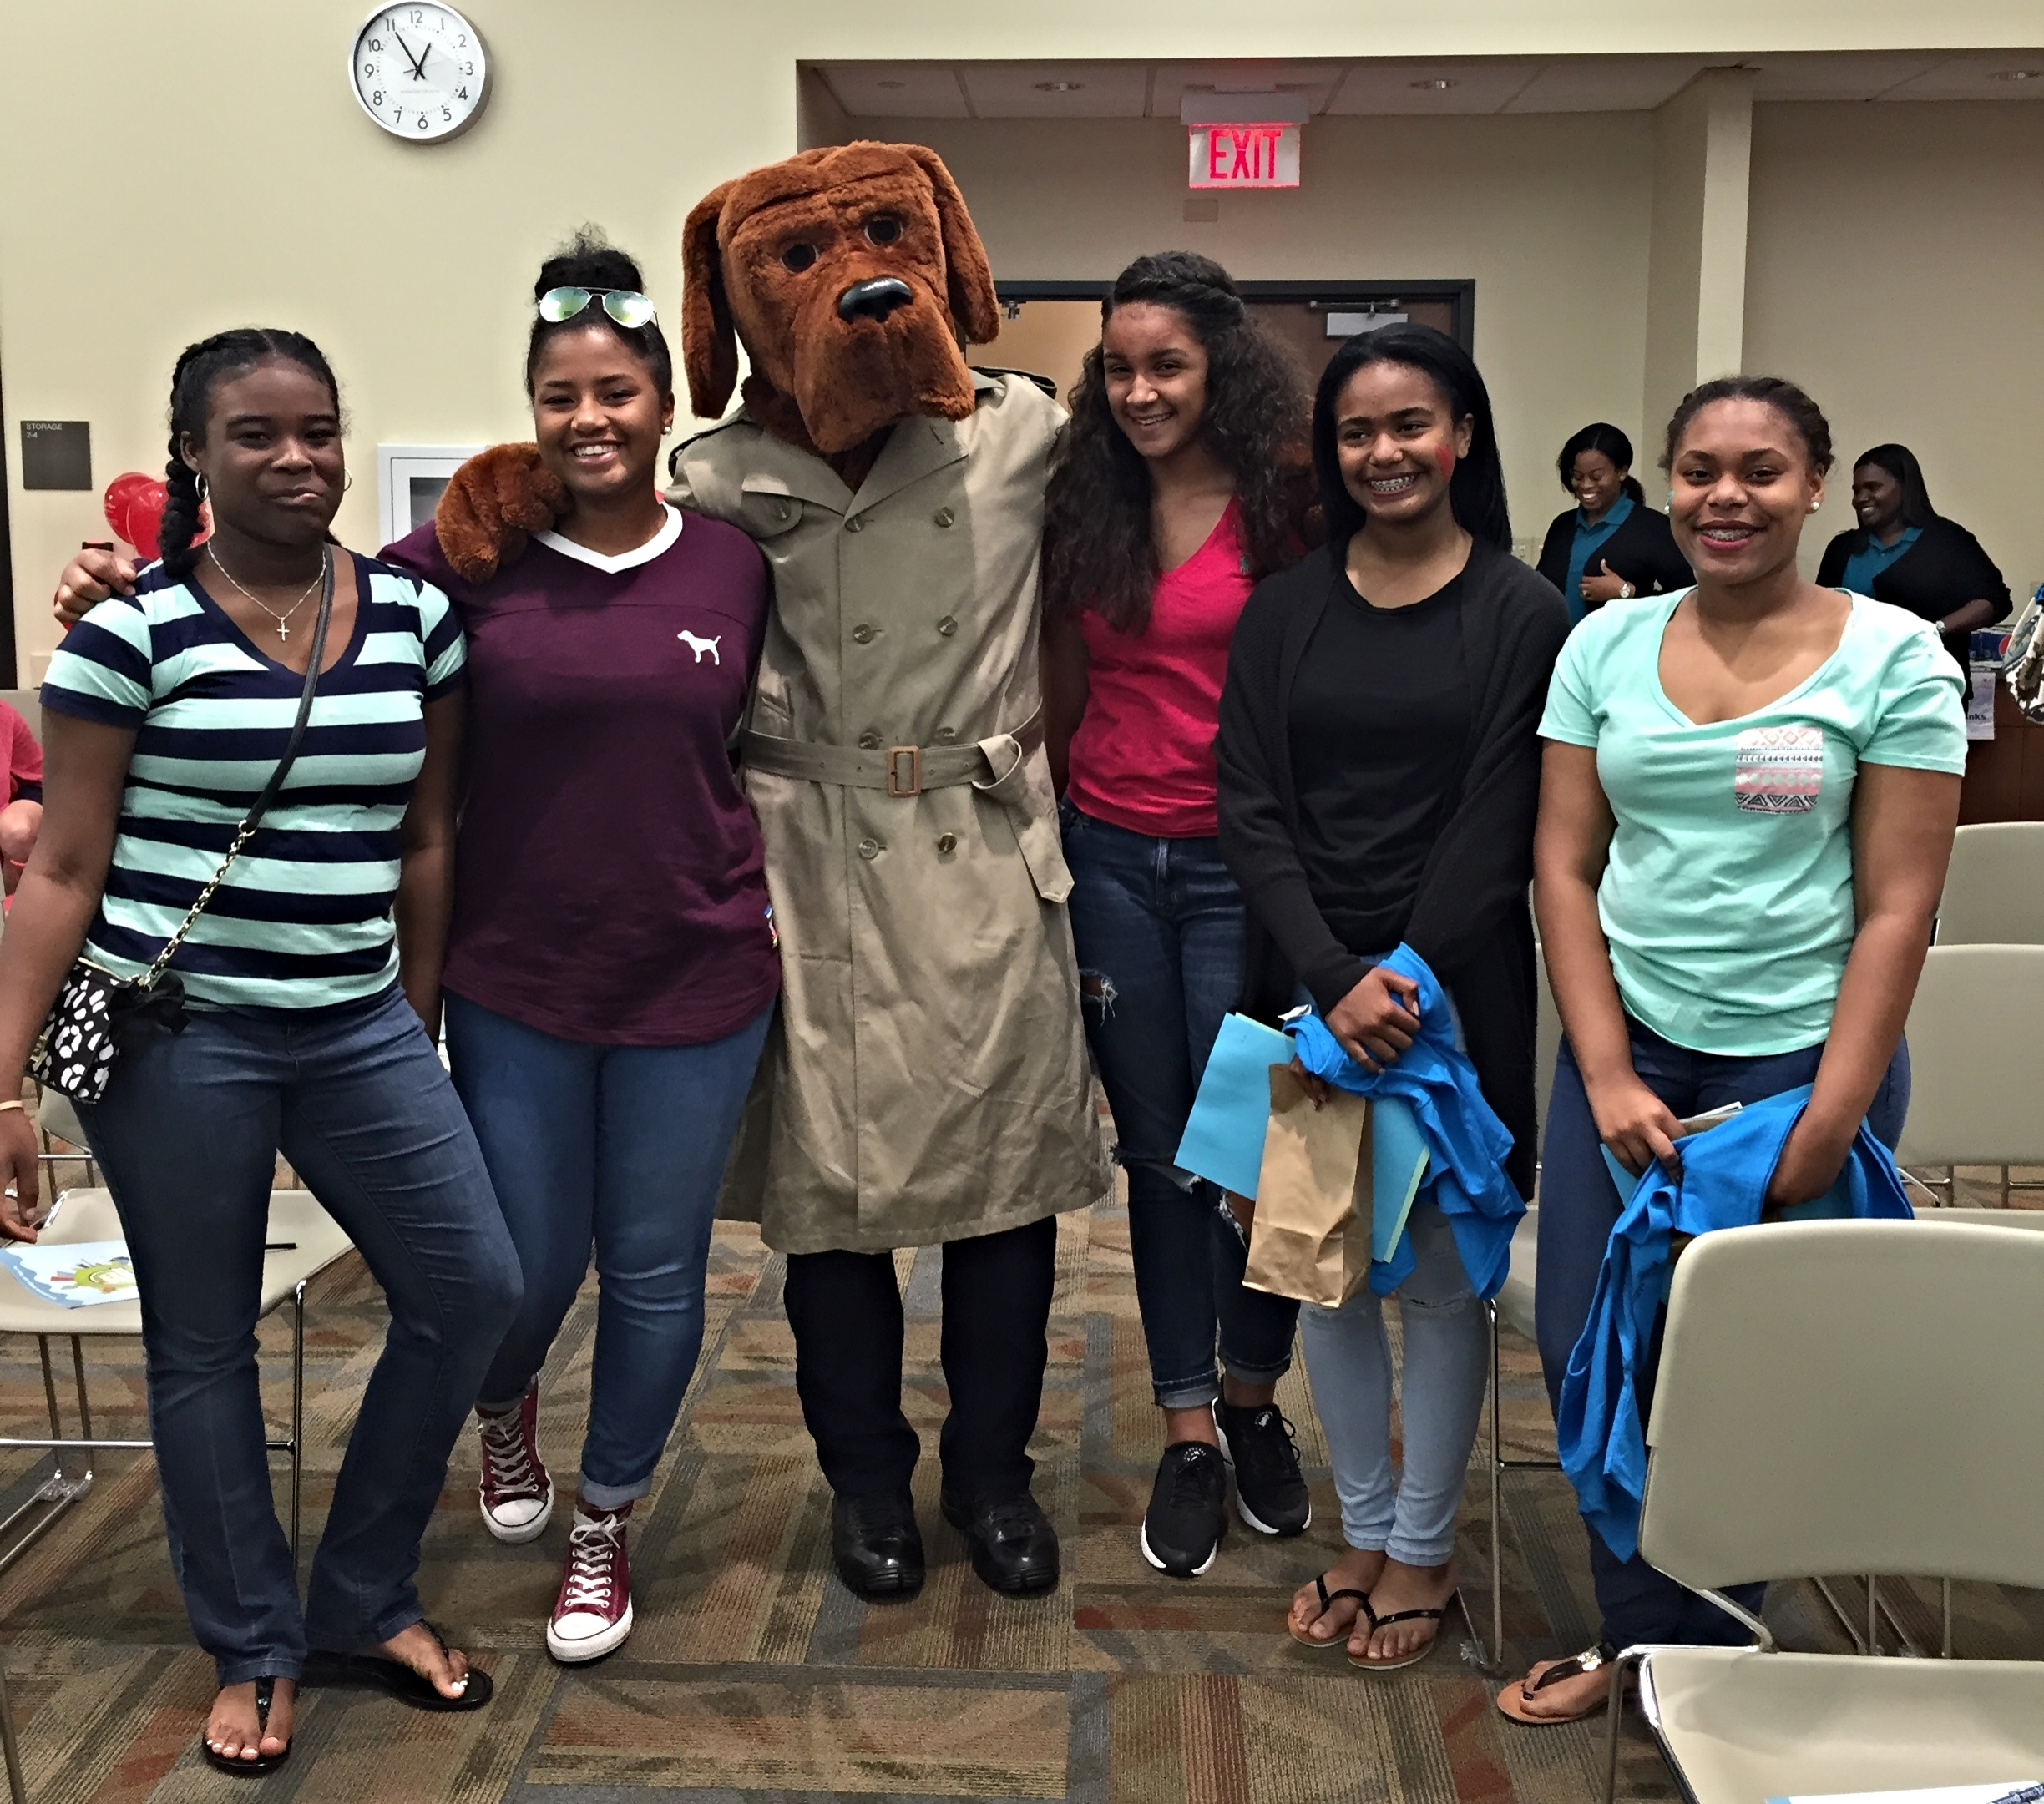 Hearts of Hope Youth Advisory Board members (Madisyn Willis, Amber Hall, AnyaRae Joseph, Micaiah McZeal & Carah Gardiner) stand with McGruff against child sexual abuse